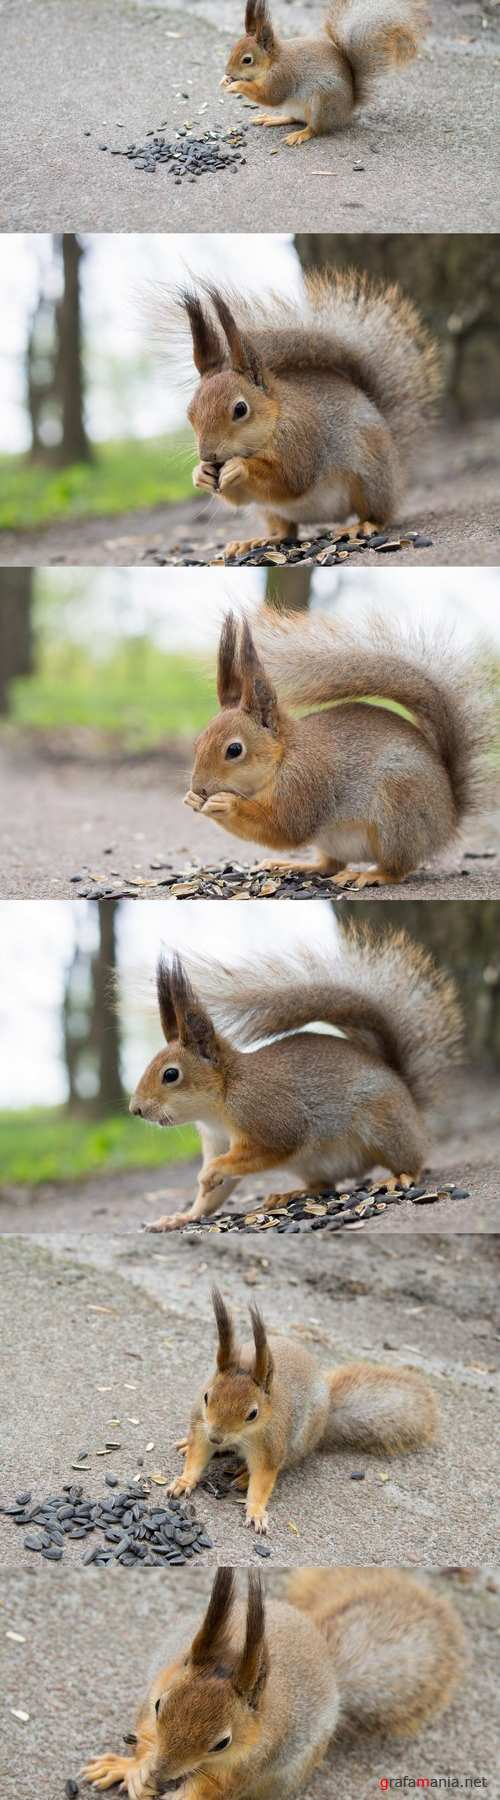 Squirrel eating sunflower seeds